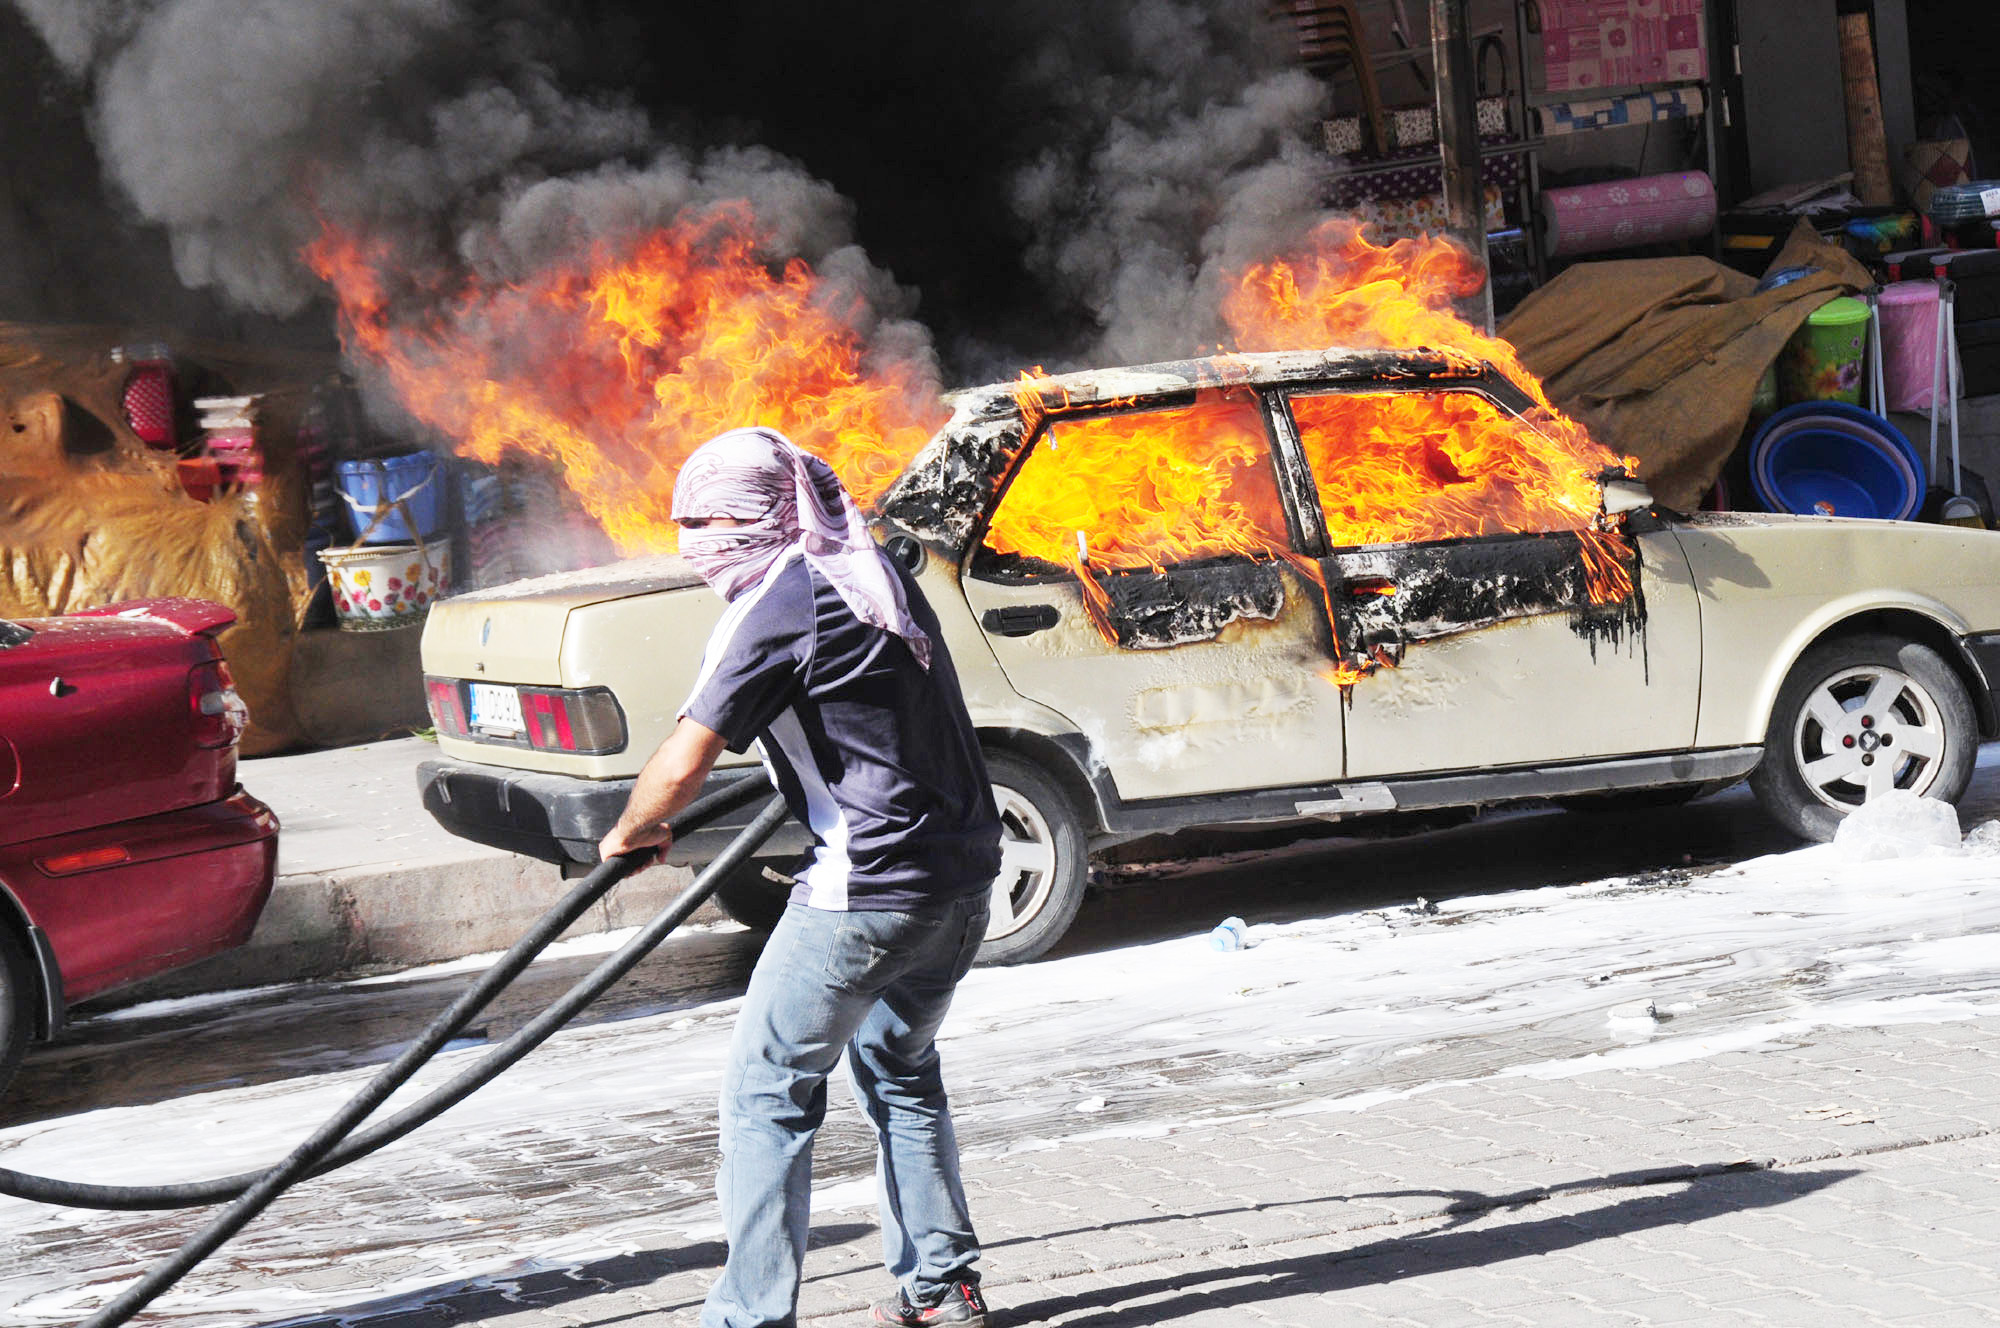 A Kurdish demonstrator stands next to a burning car as Kurdish protesters clash with Turkish police during a rally outlawed by state authoritites to demand the release of jailed rebel leader Abdullah Ocalan , on July 14, 2012, in Diyarbakir (photo: AFP)